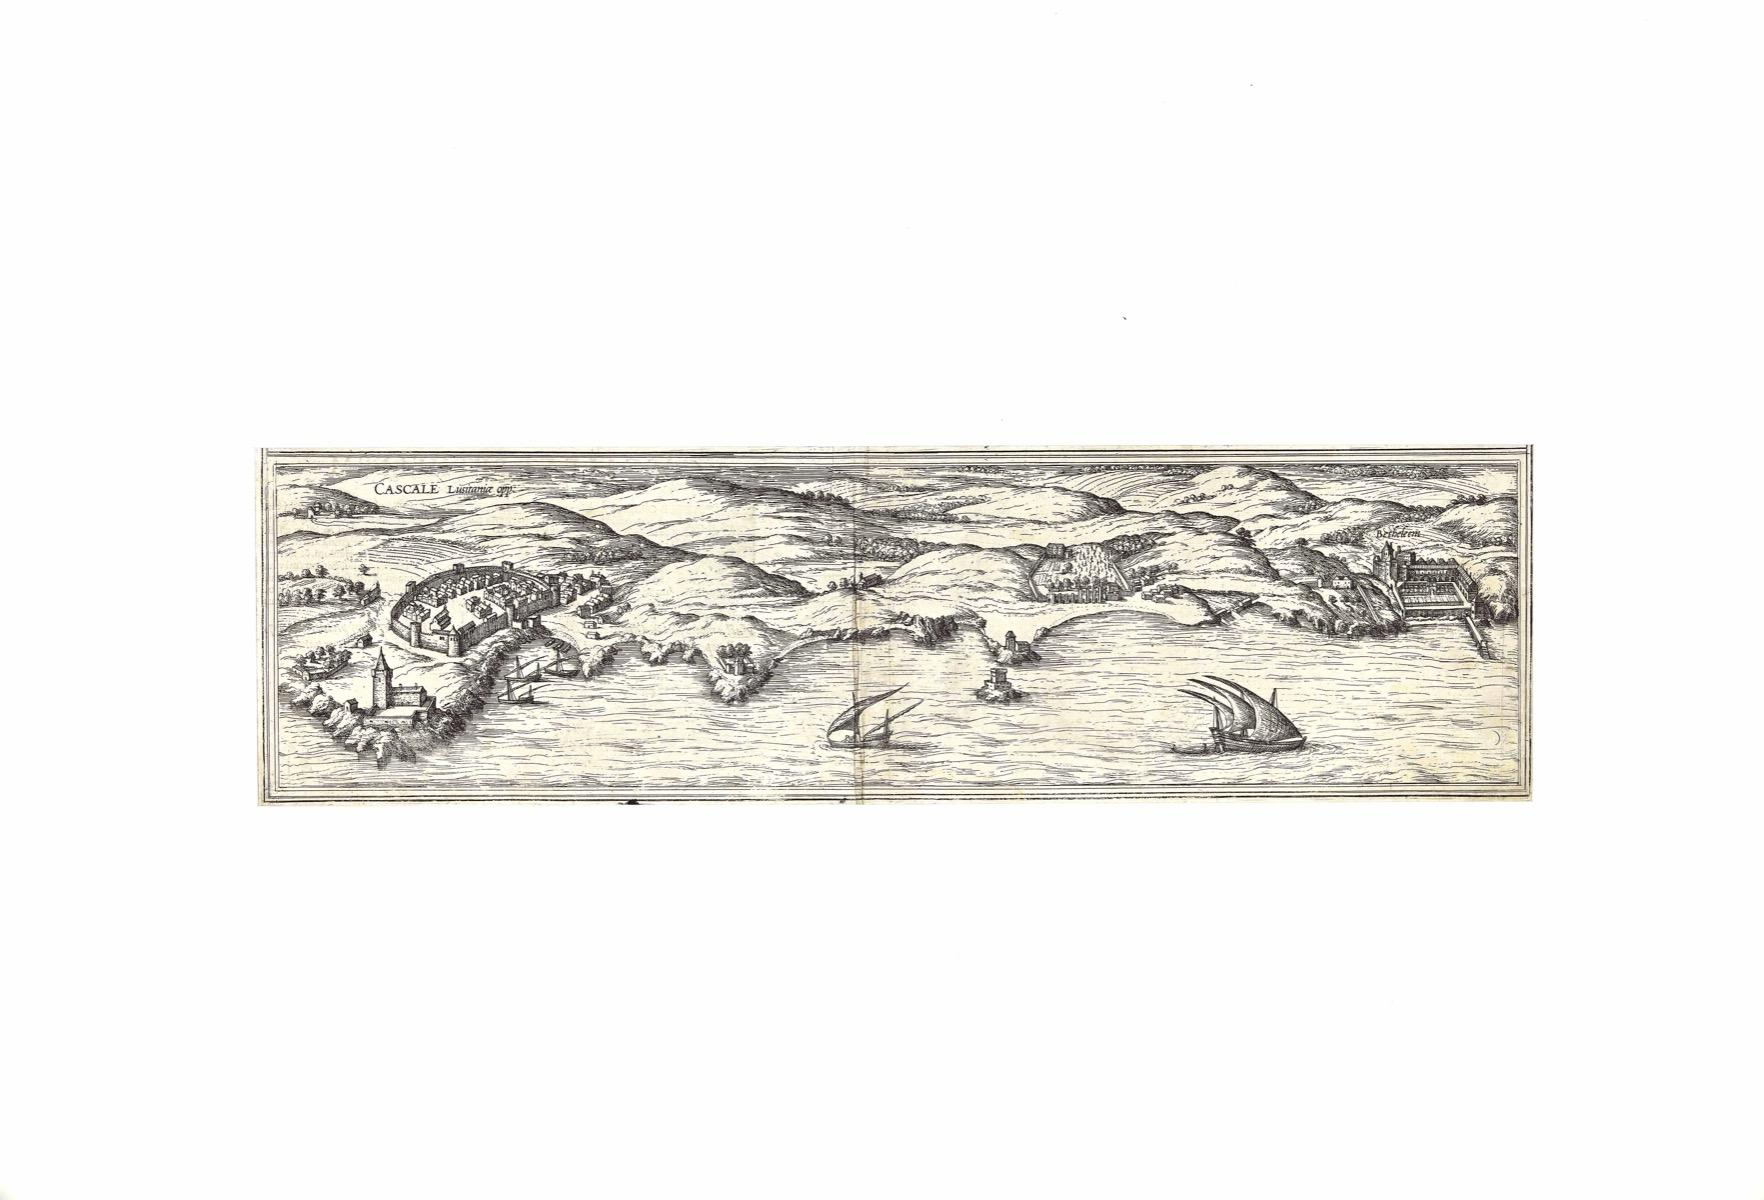 View of Cascals - Etching by G. Braun and F. Hogenberg -Late 16th Century